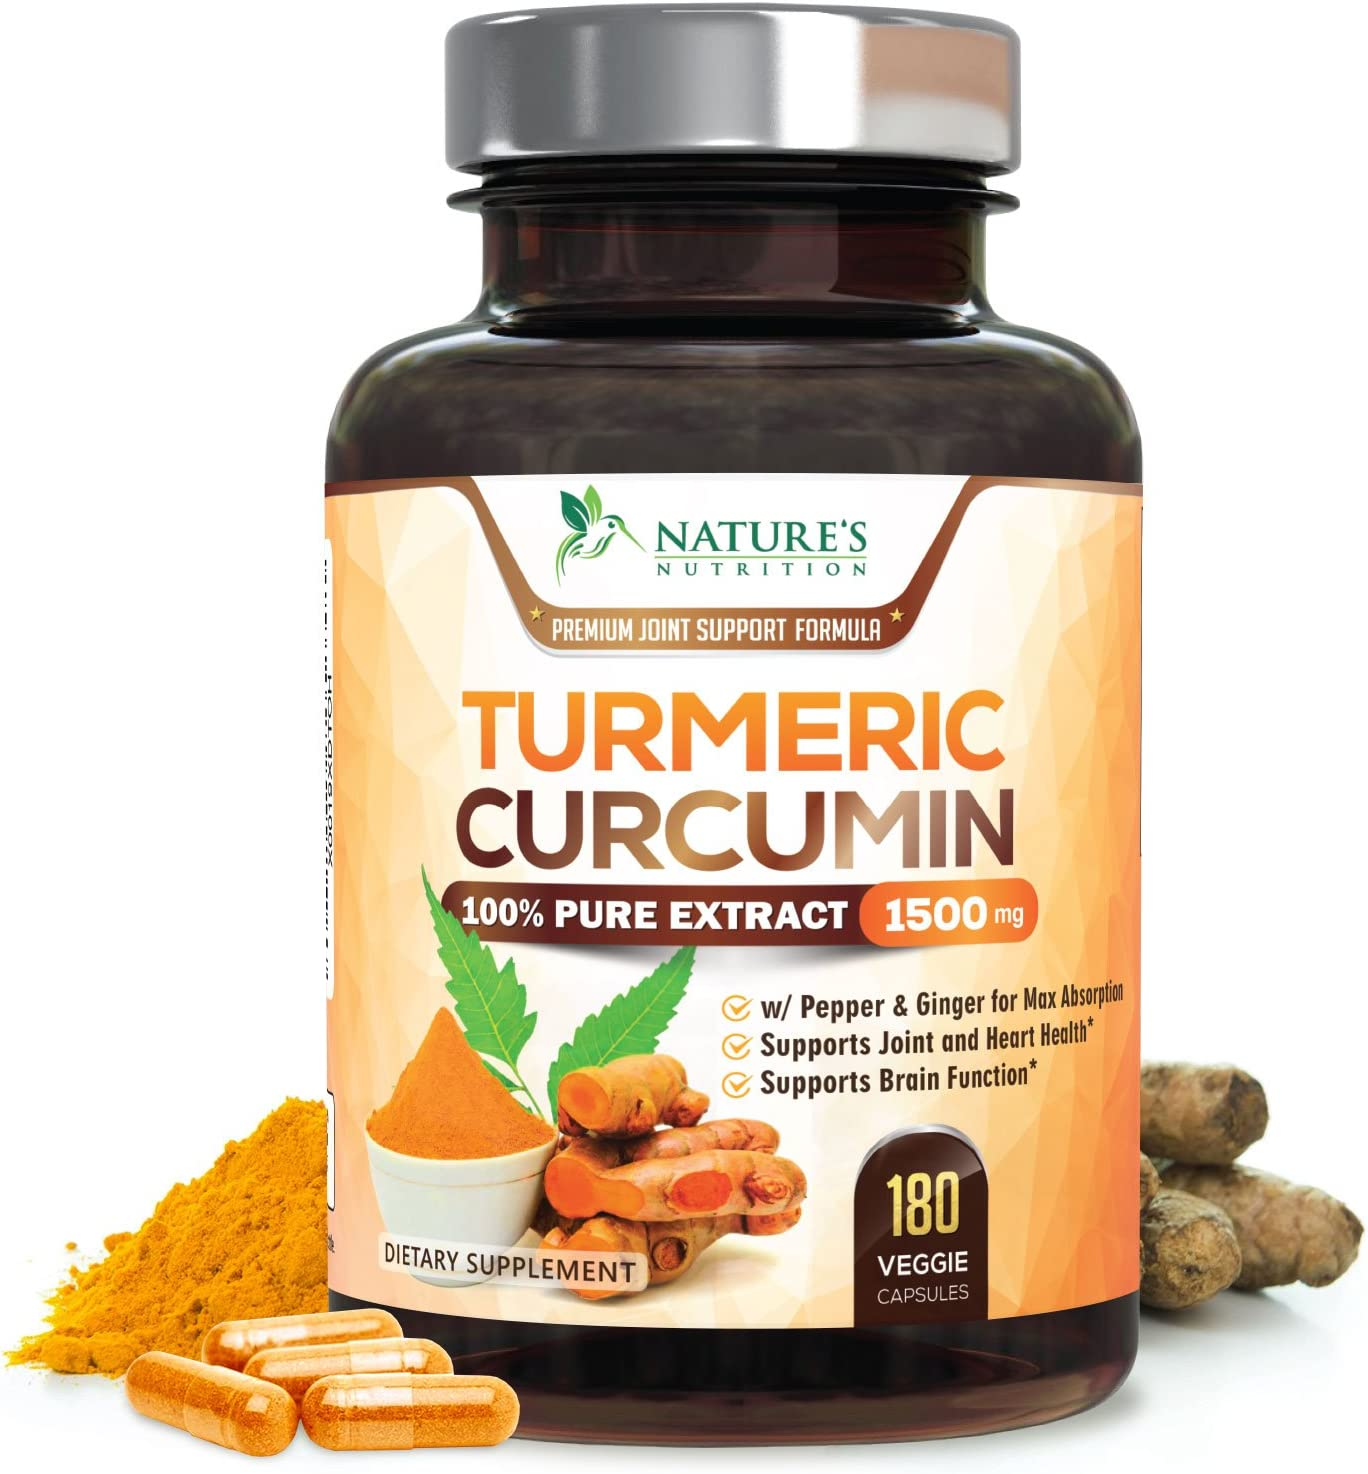 Turmeric Curcumin 100 Pure Extract 95 Curcuminoids with Bioperine Black Pepper for Best Absorption, Best Joint Pain Relief, Made in USA, Turmeric Pills by Natures Nutrition – 180 Capsules